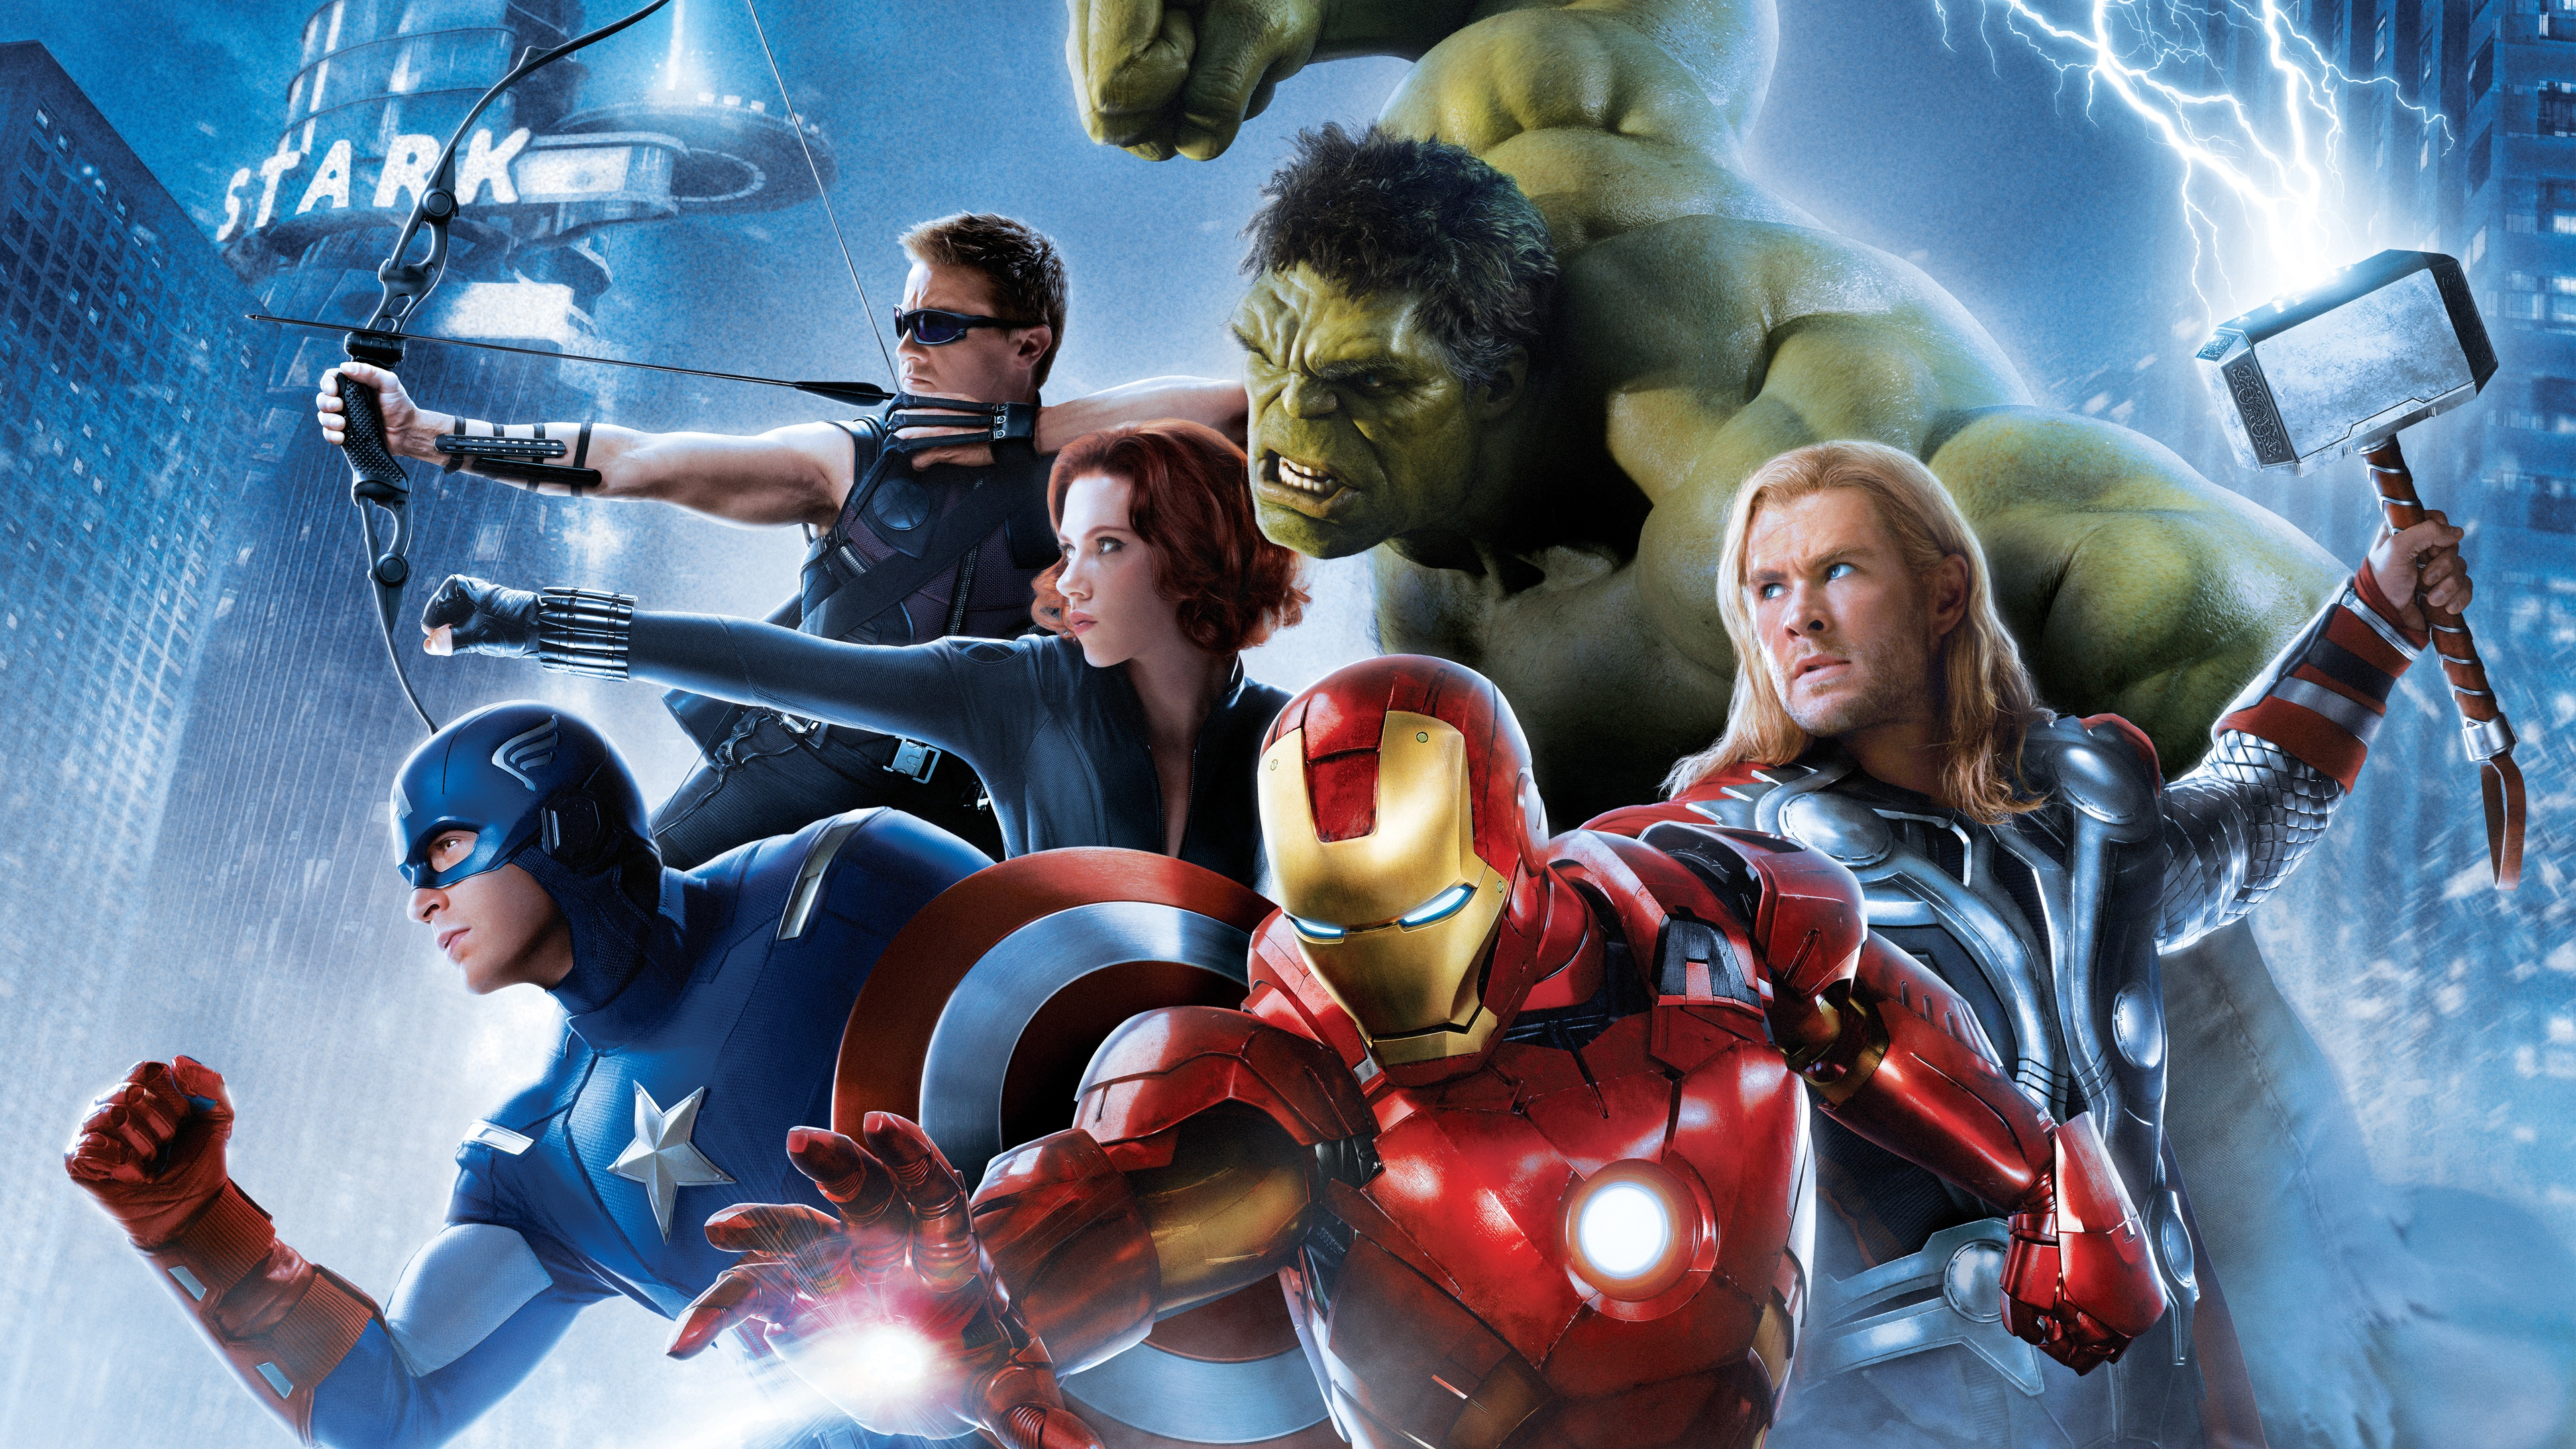 2015_avengers_2_age_of_ultron-3840x2160